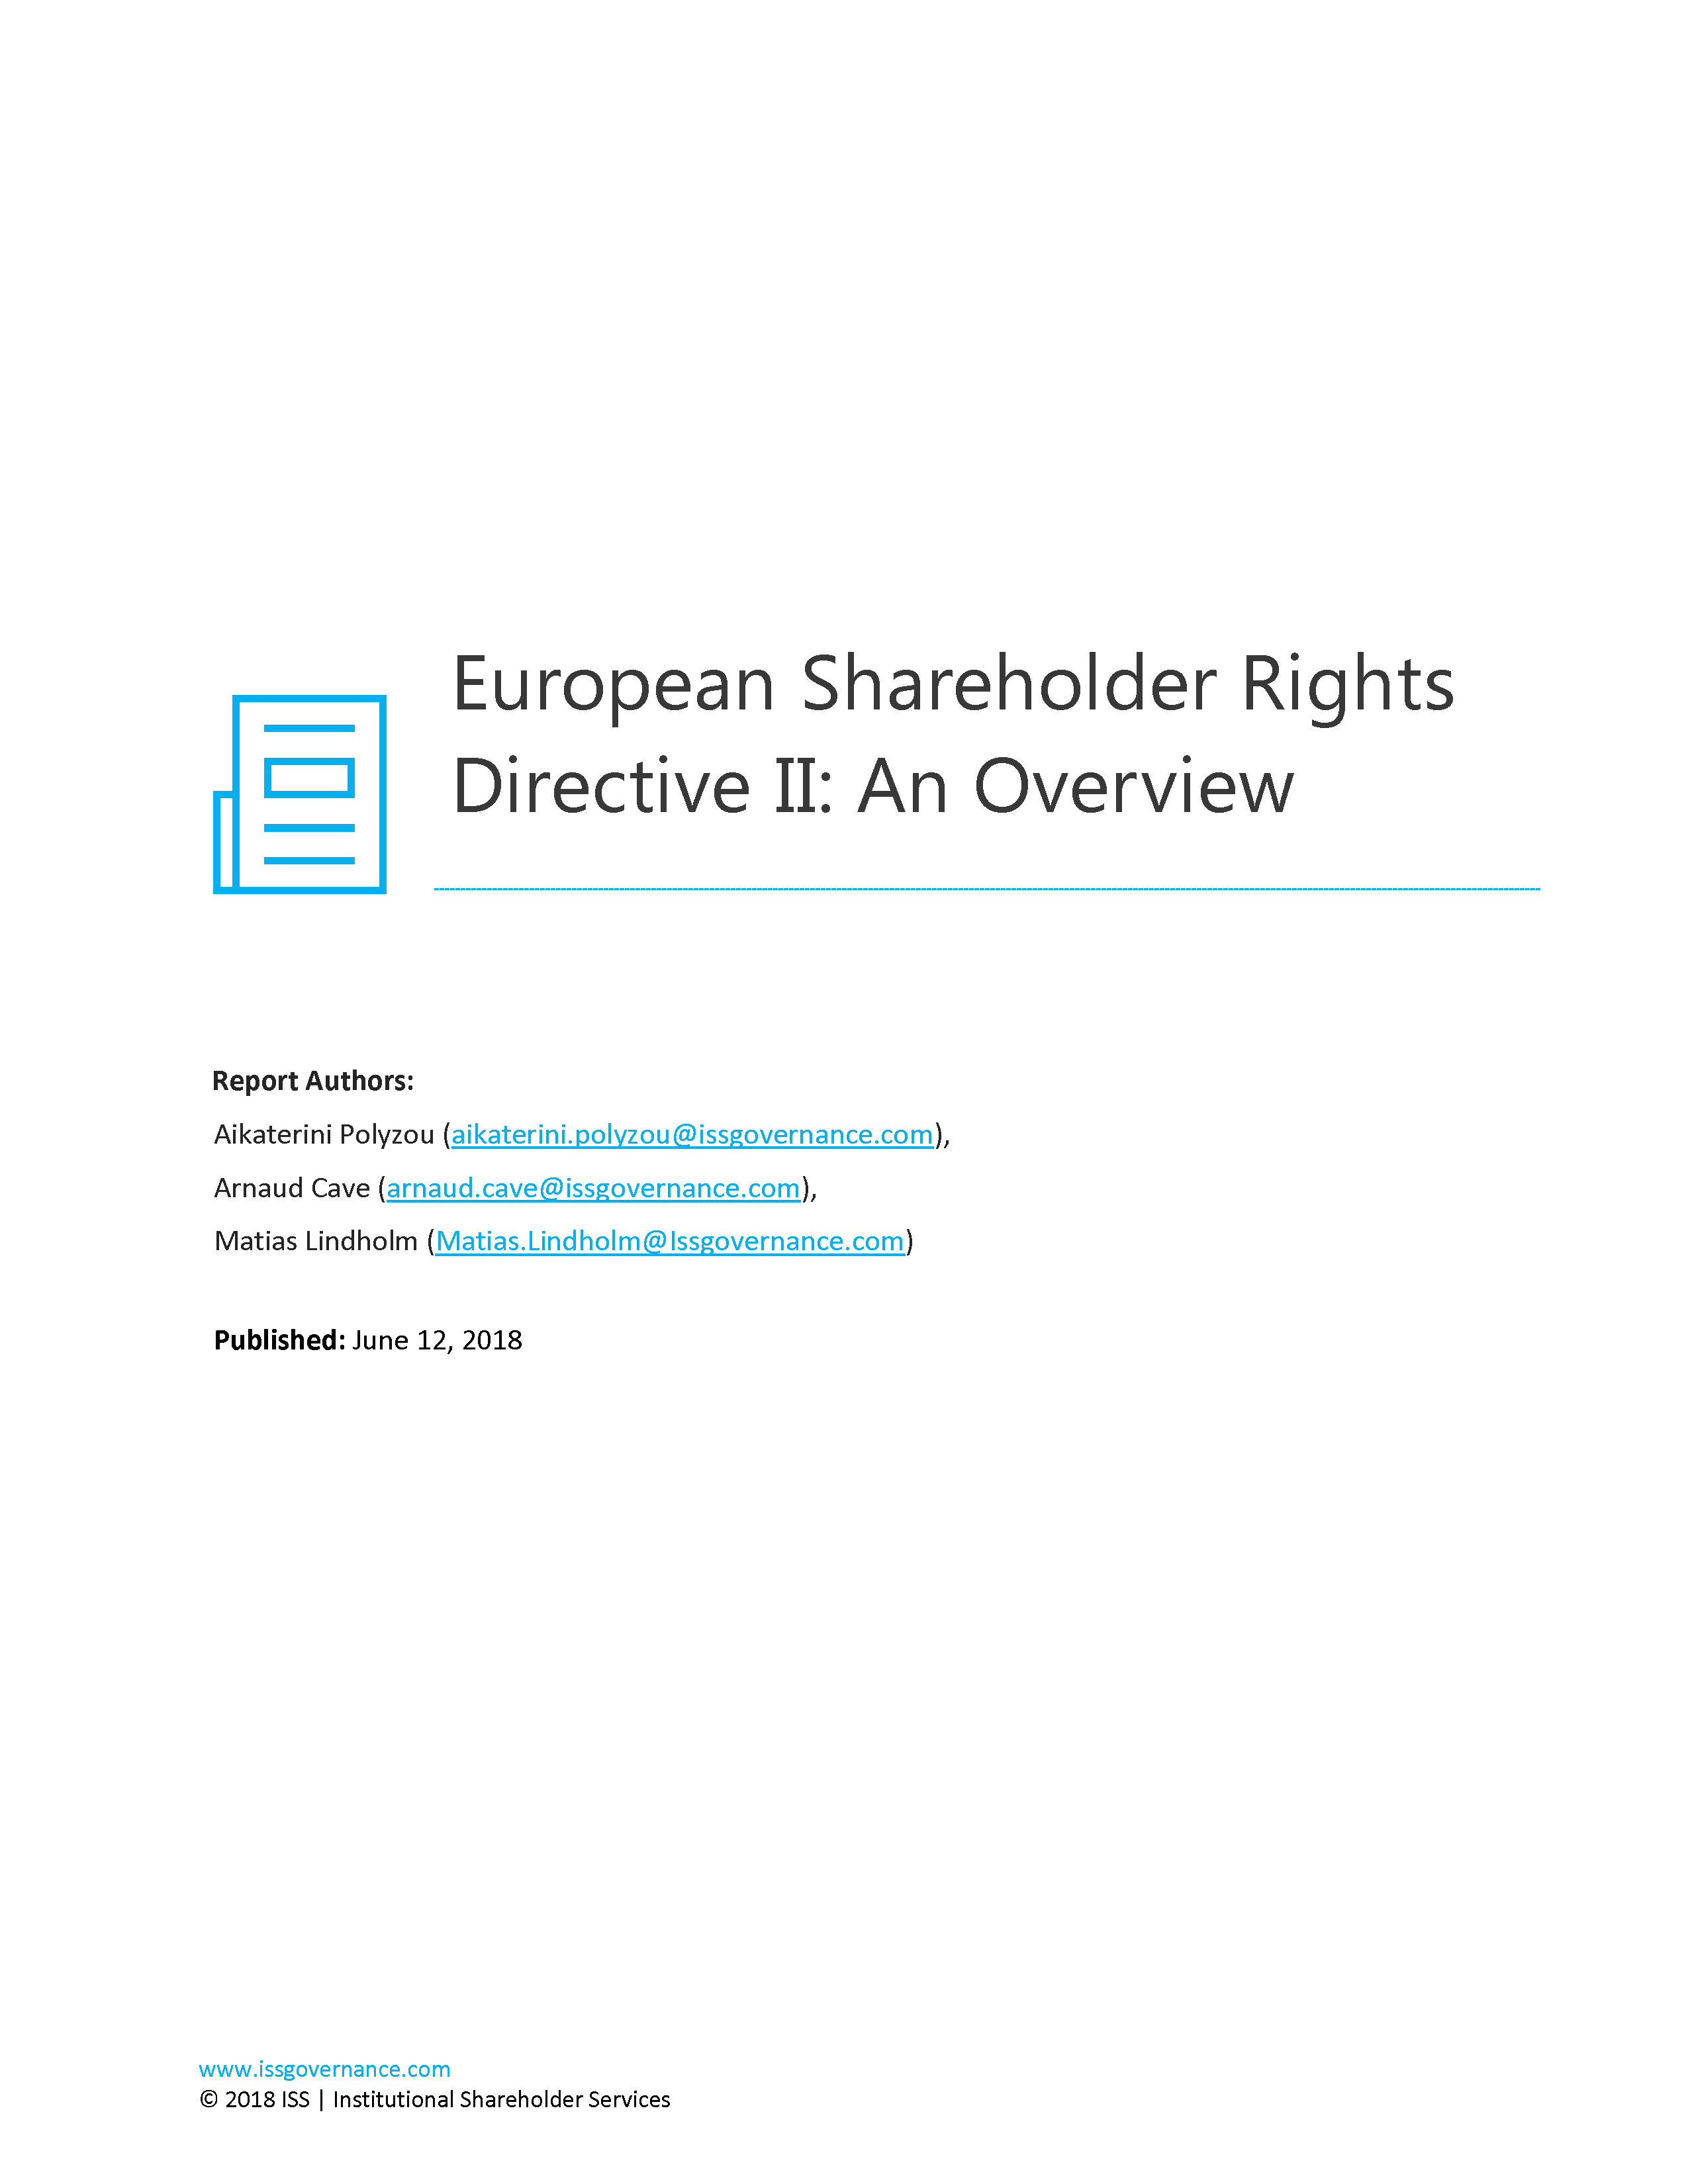 european-shareholder-rights-directive-ii-an-overview